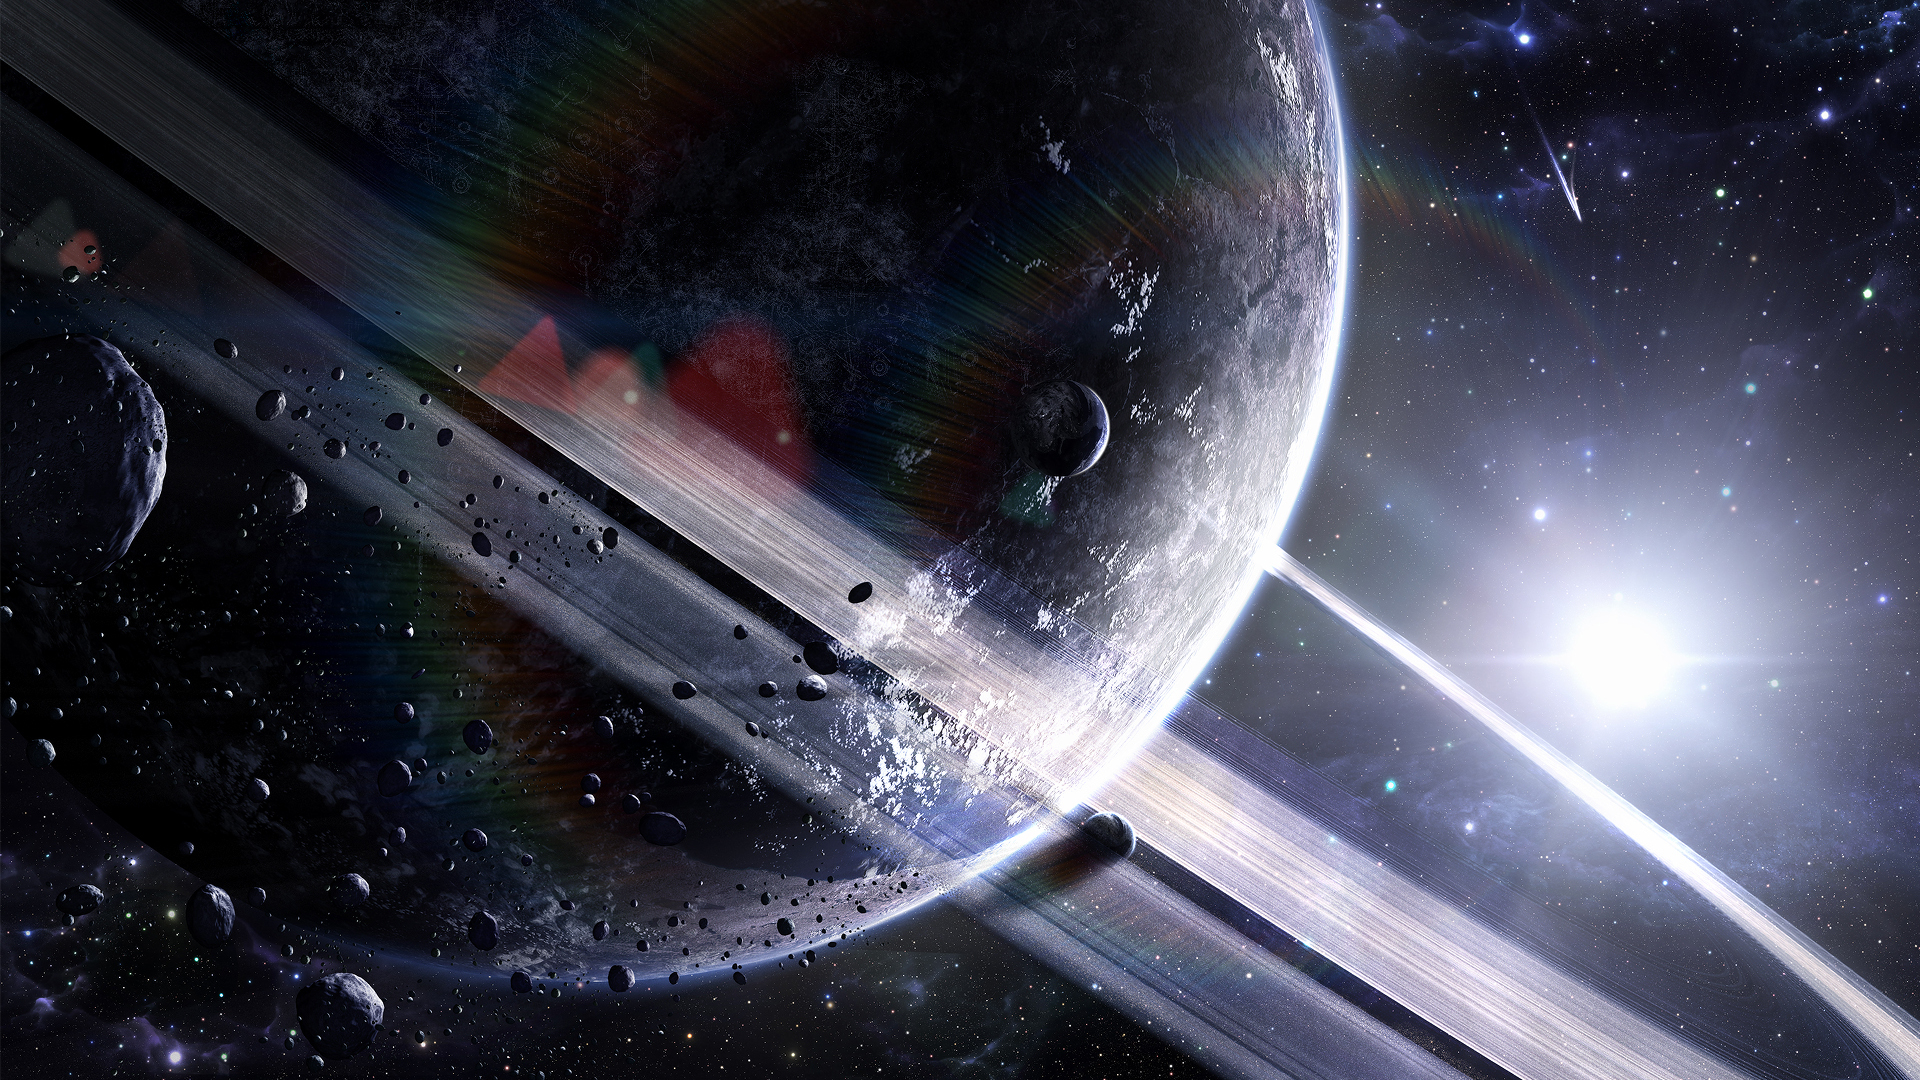 Download free HD Cool 3D Space HD Wallpaper, image